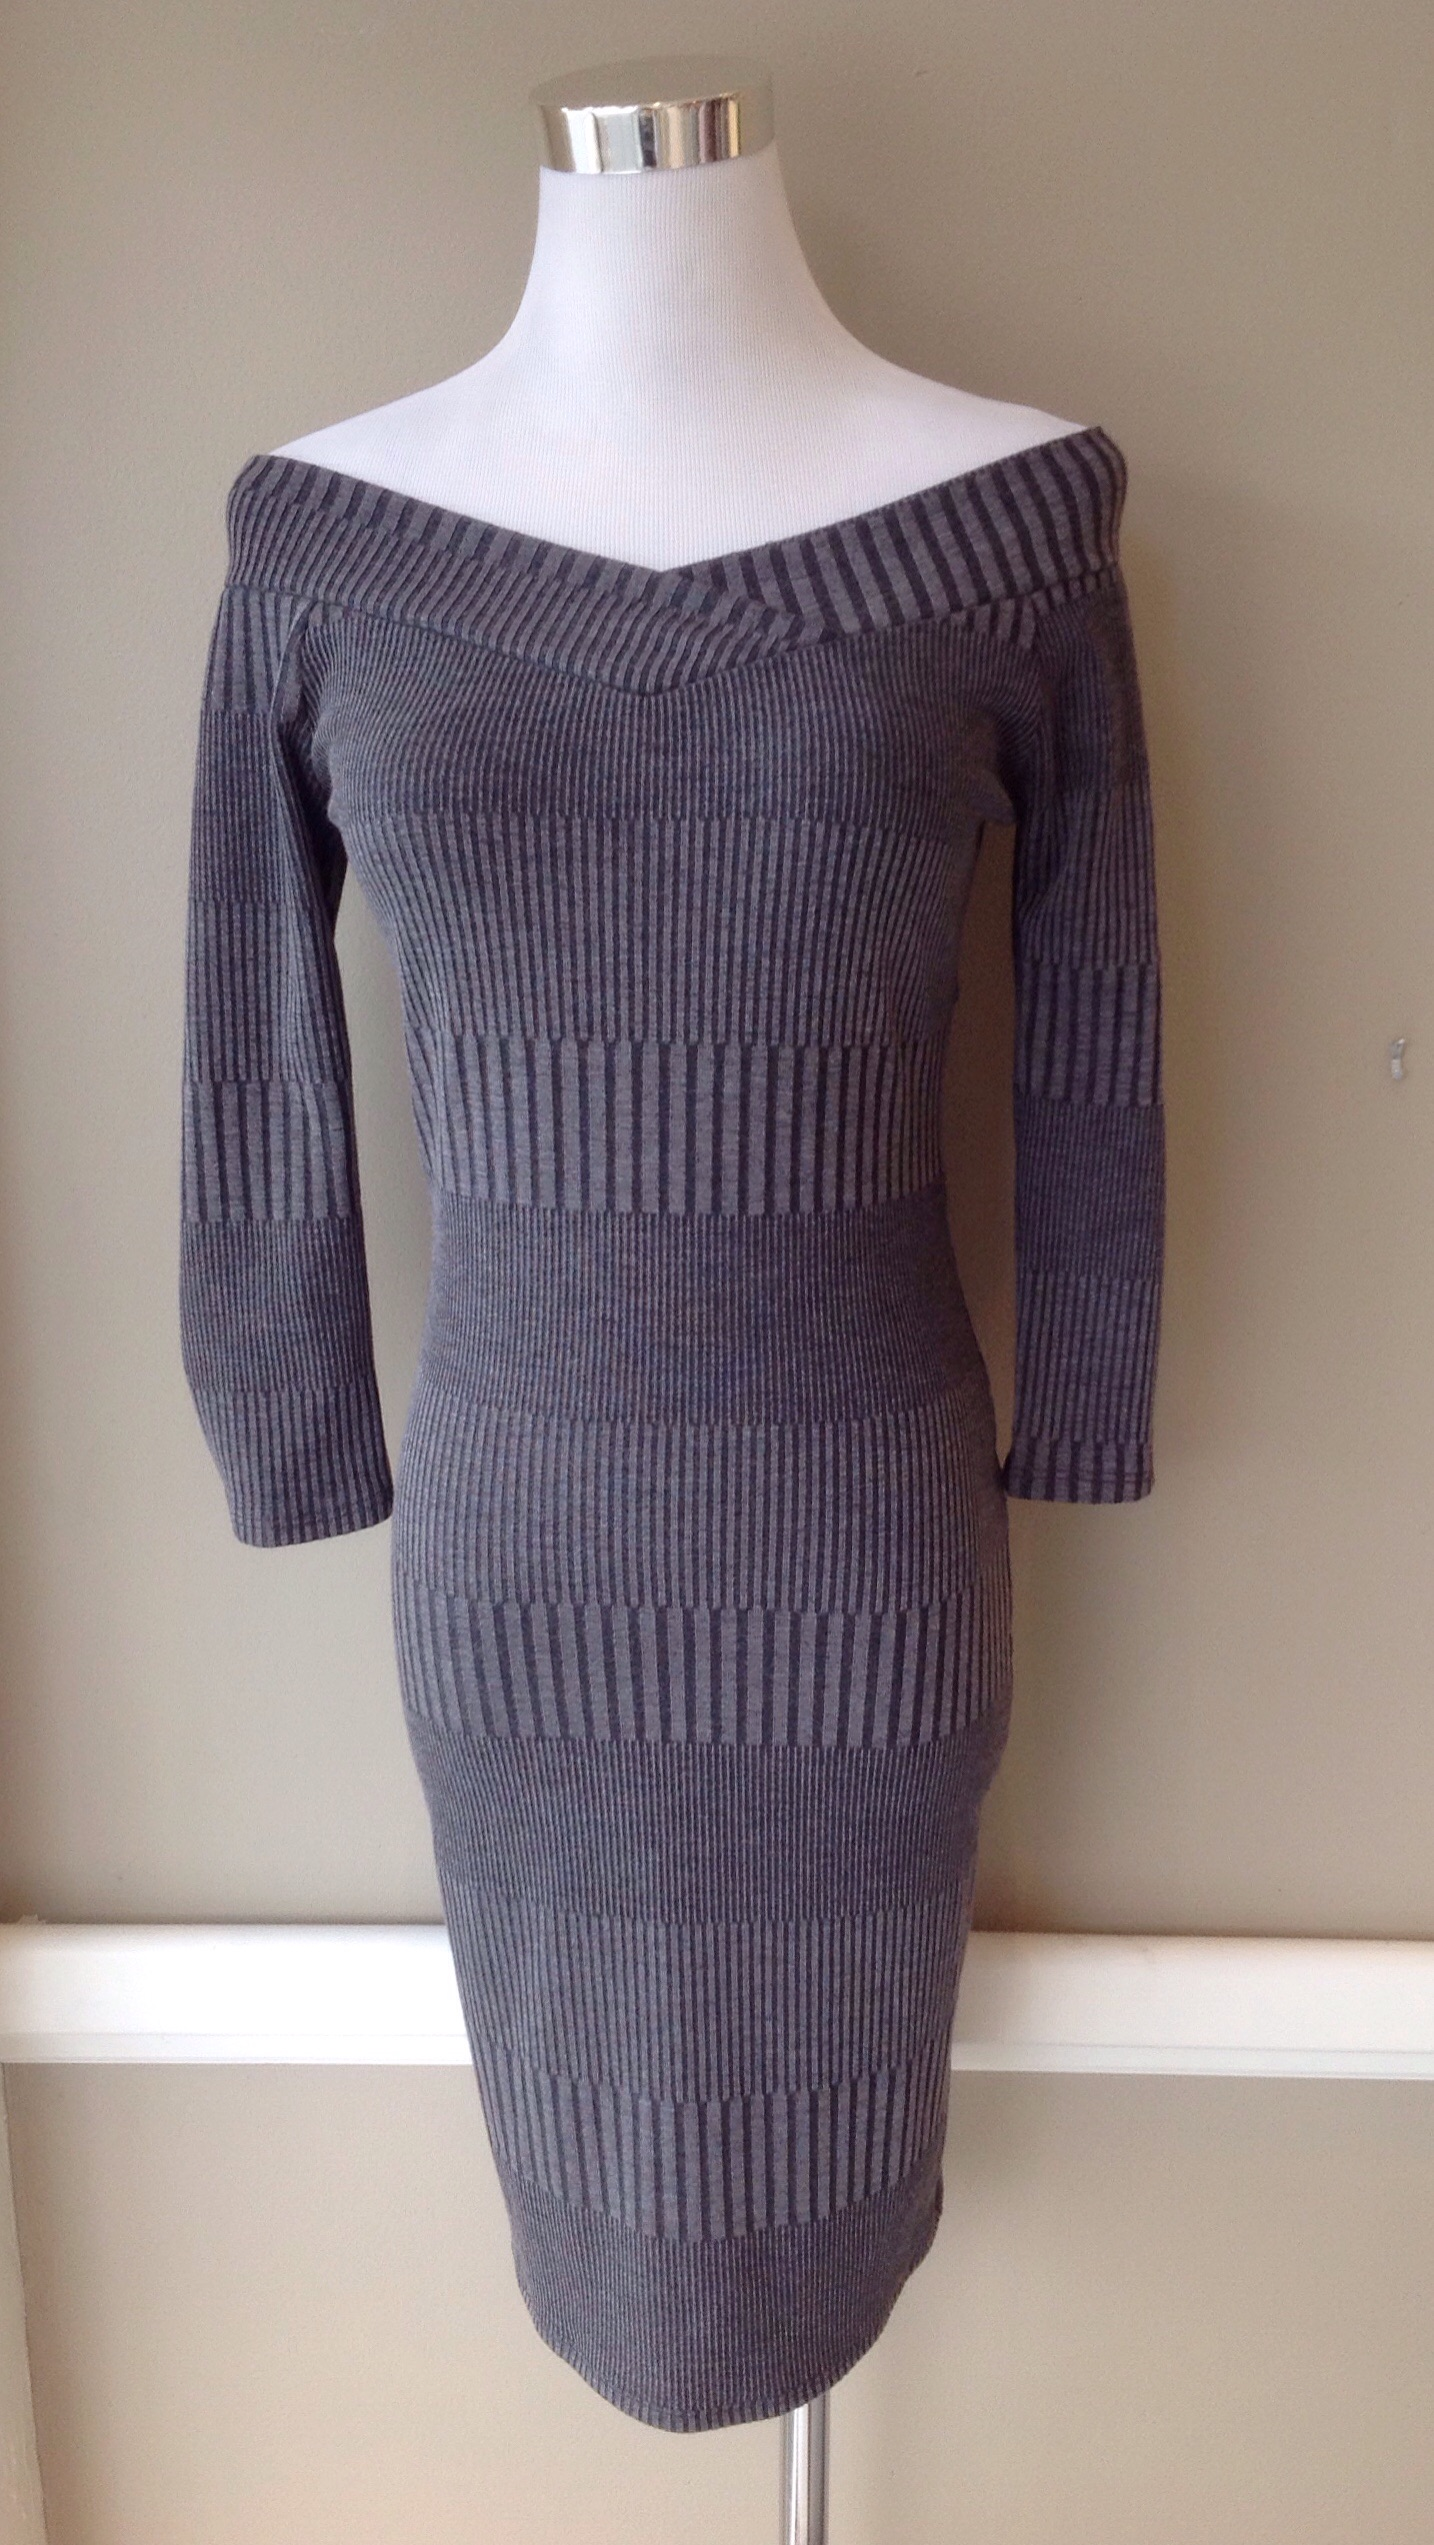 Grey off-the-shoulder bodycon dress, $38